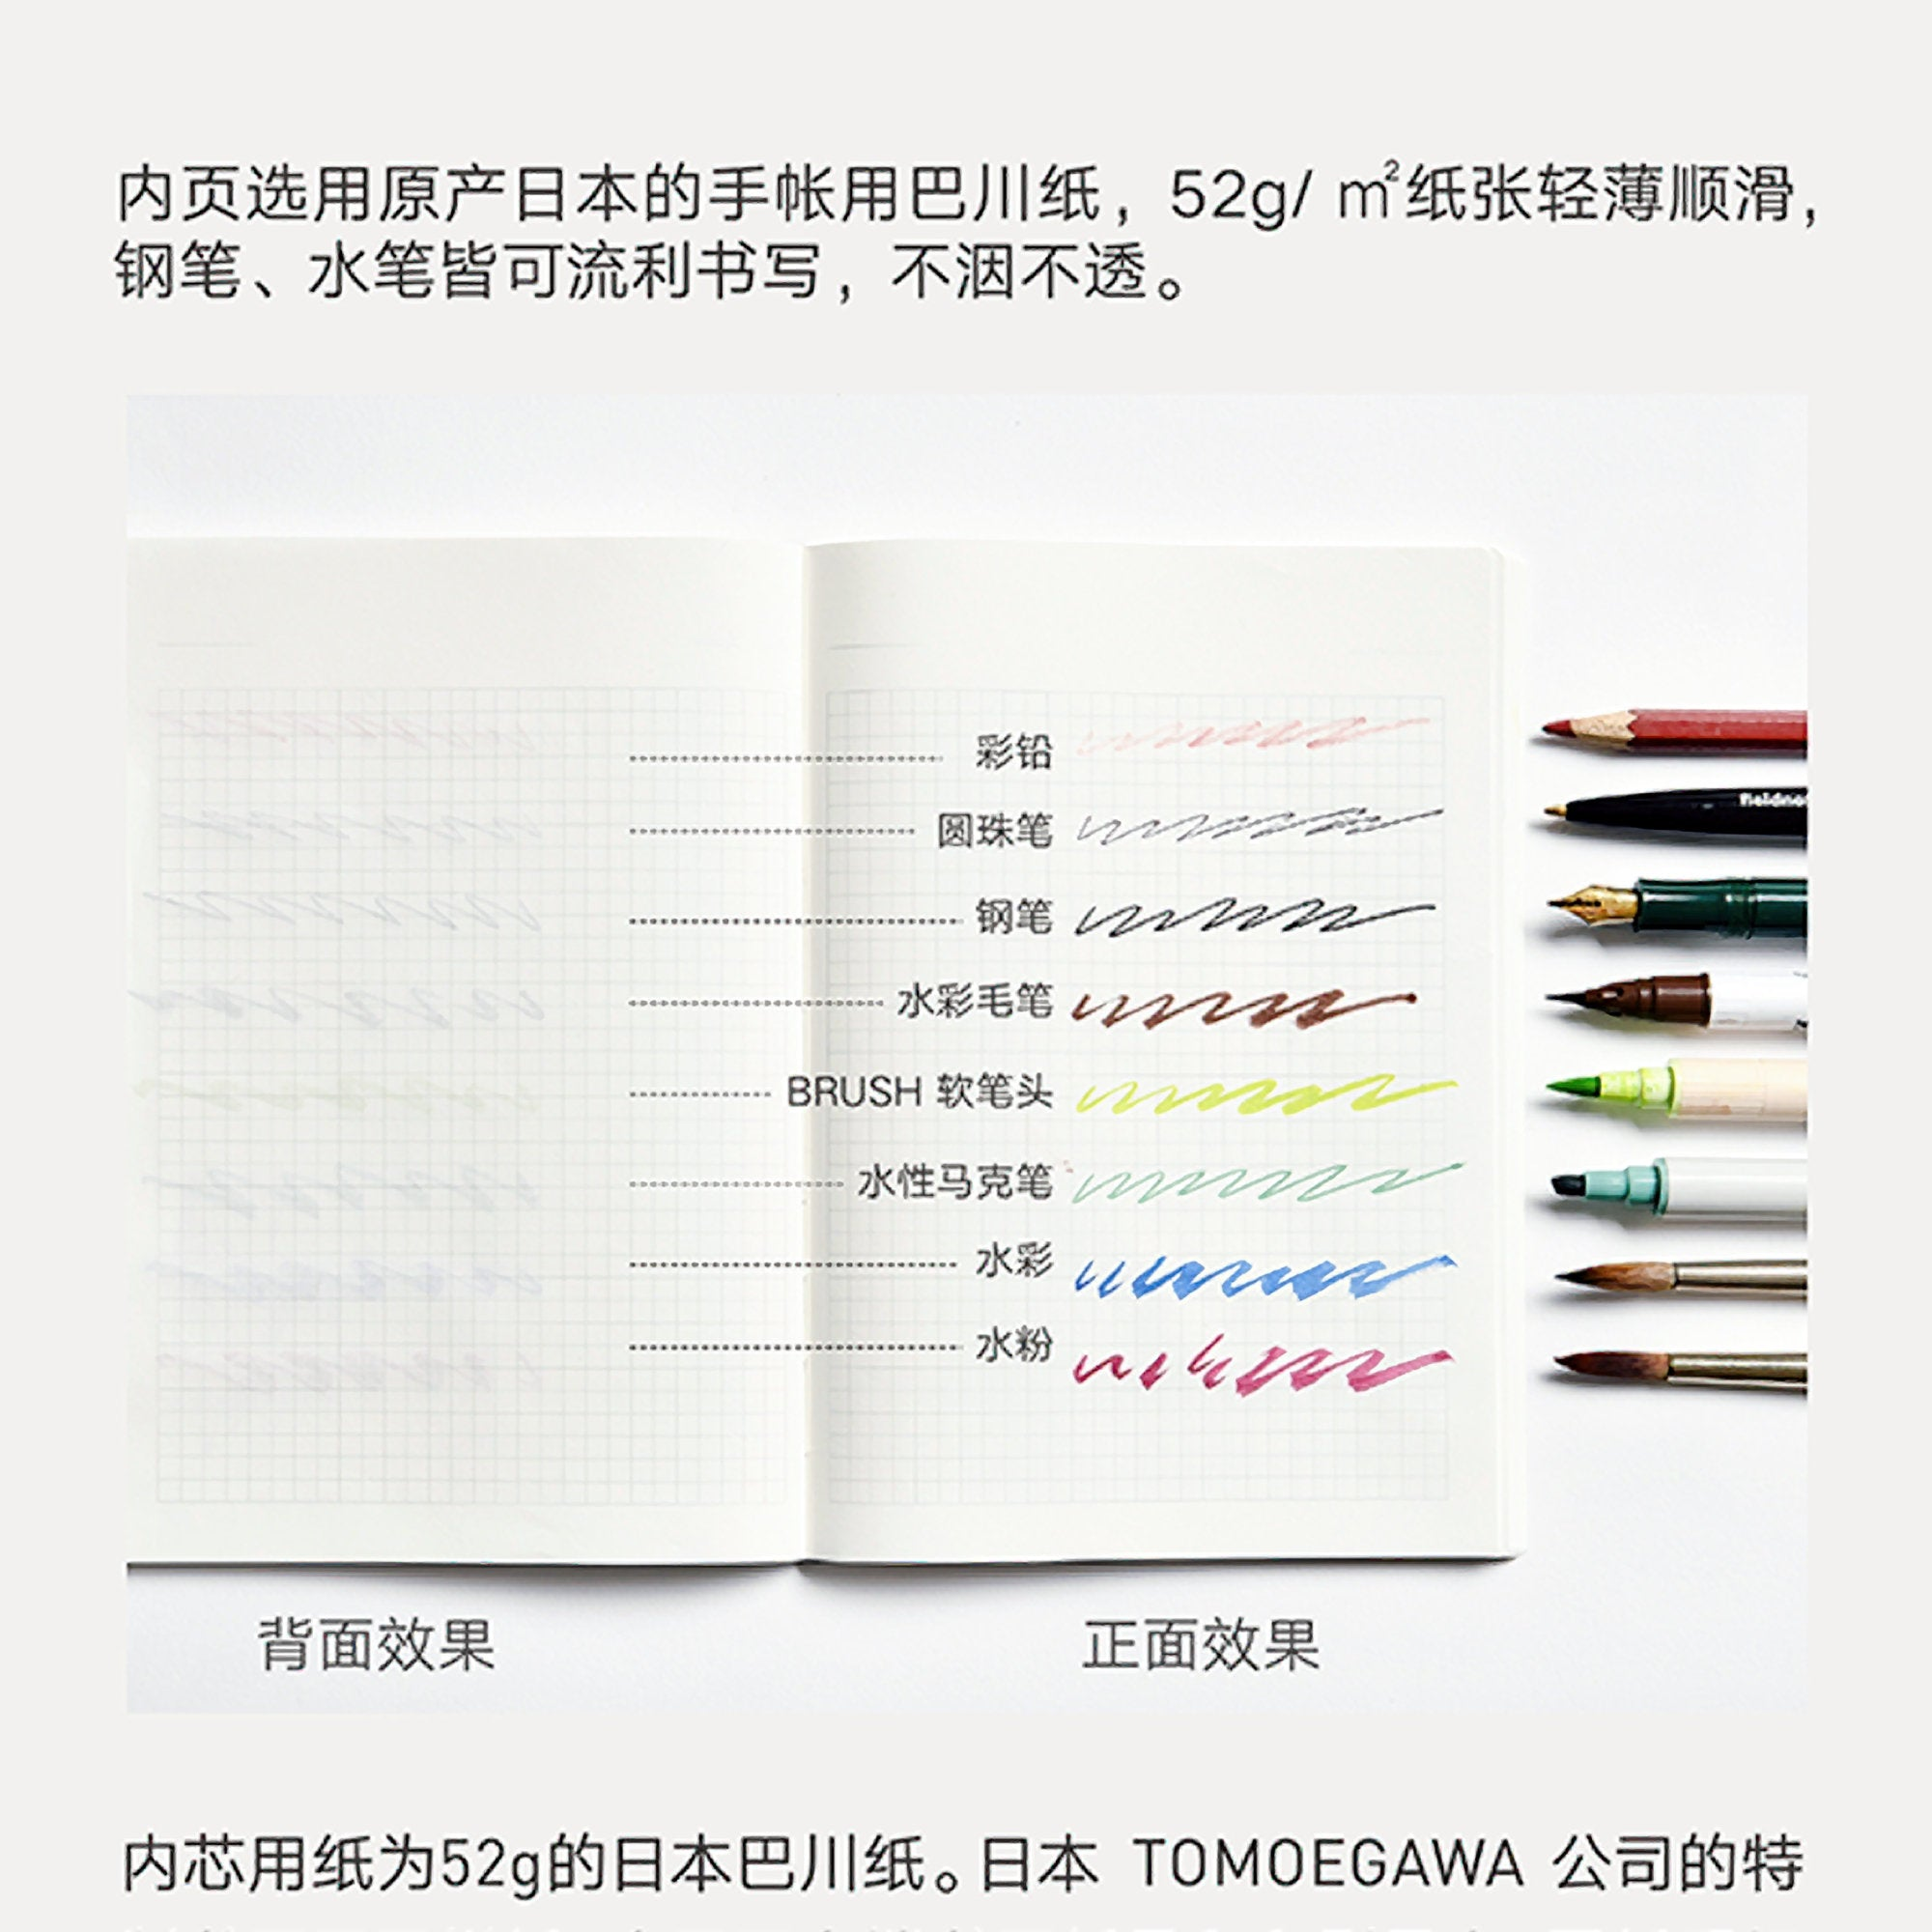 Papermood A6 Tomoe River Paper Cousin Techo One Day Per Page Planner Notebook Journal | 448 Pages - The Stationery Life!